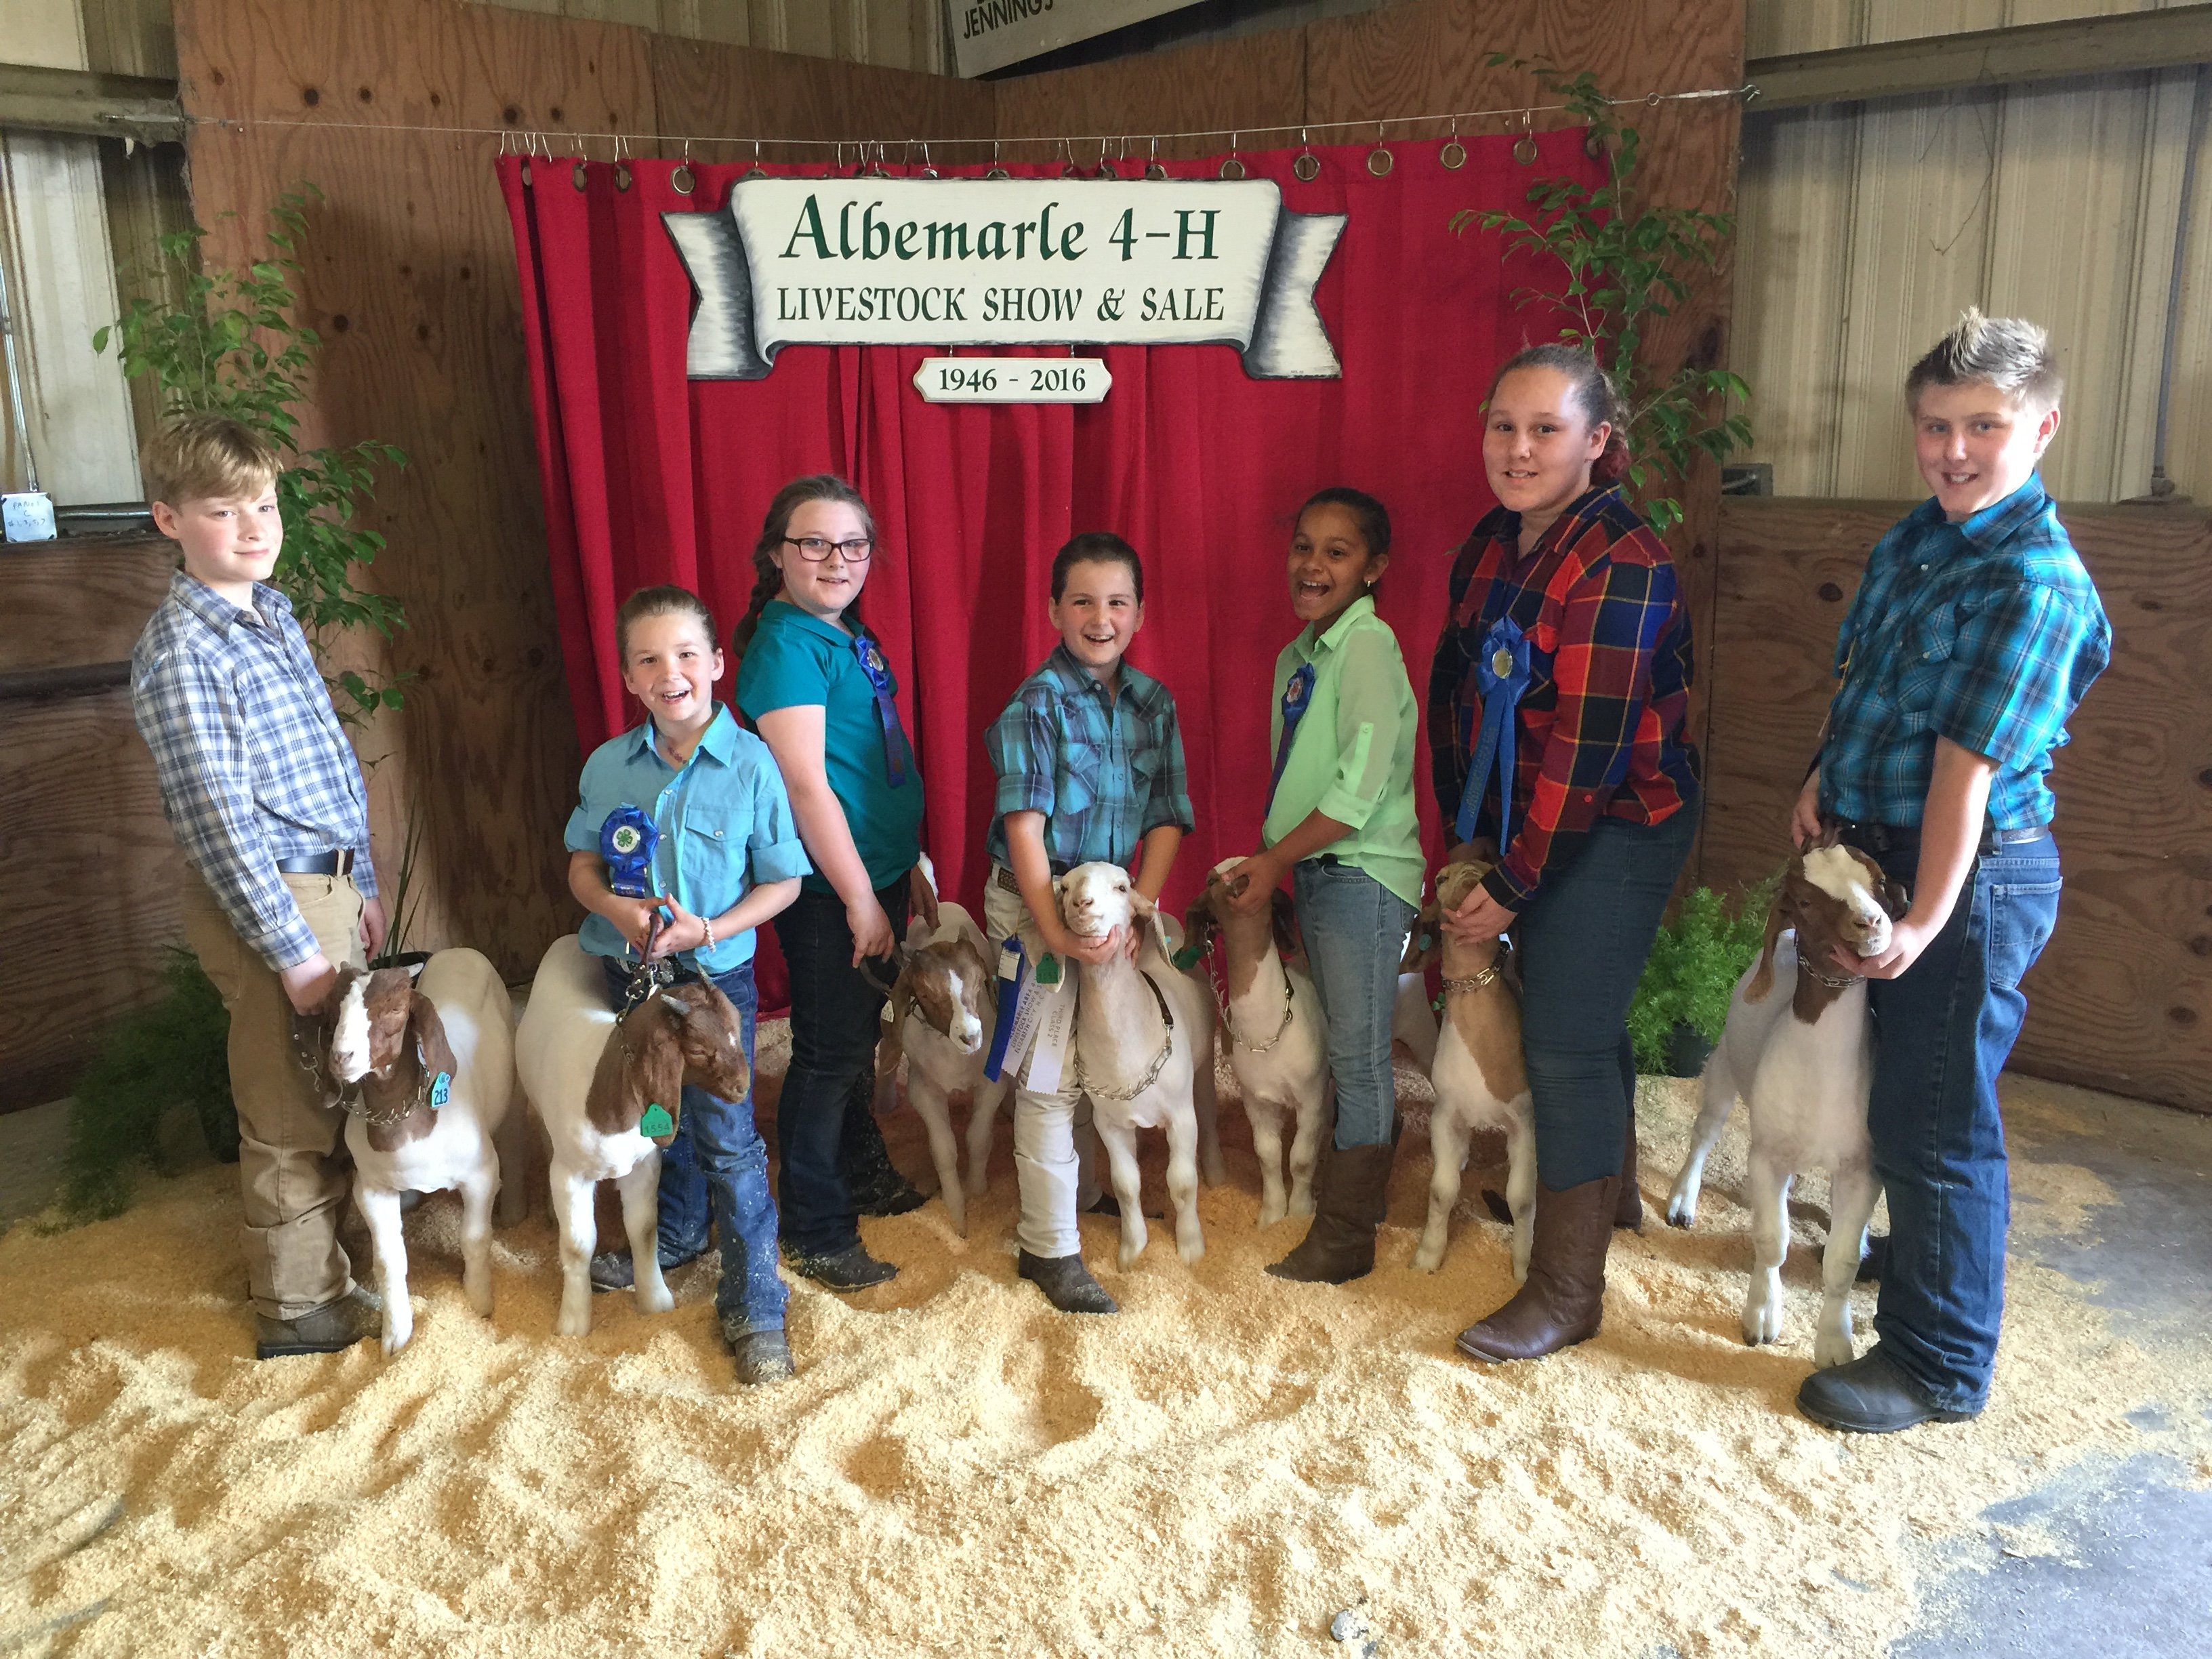 Children standing in front of 4-H sign with goats